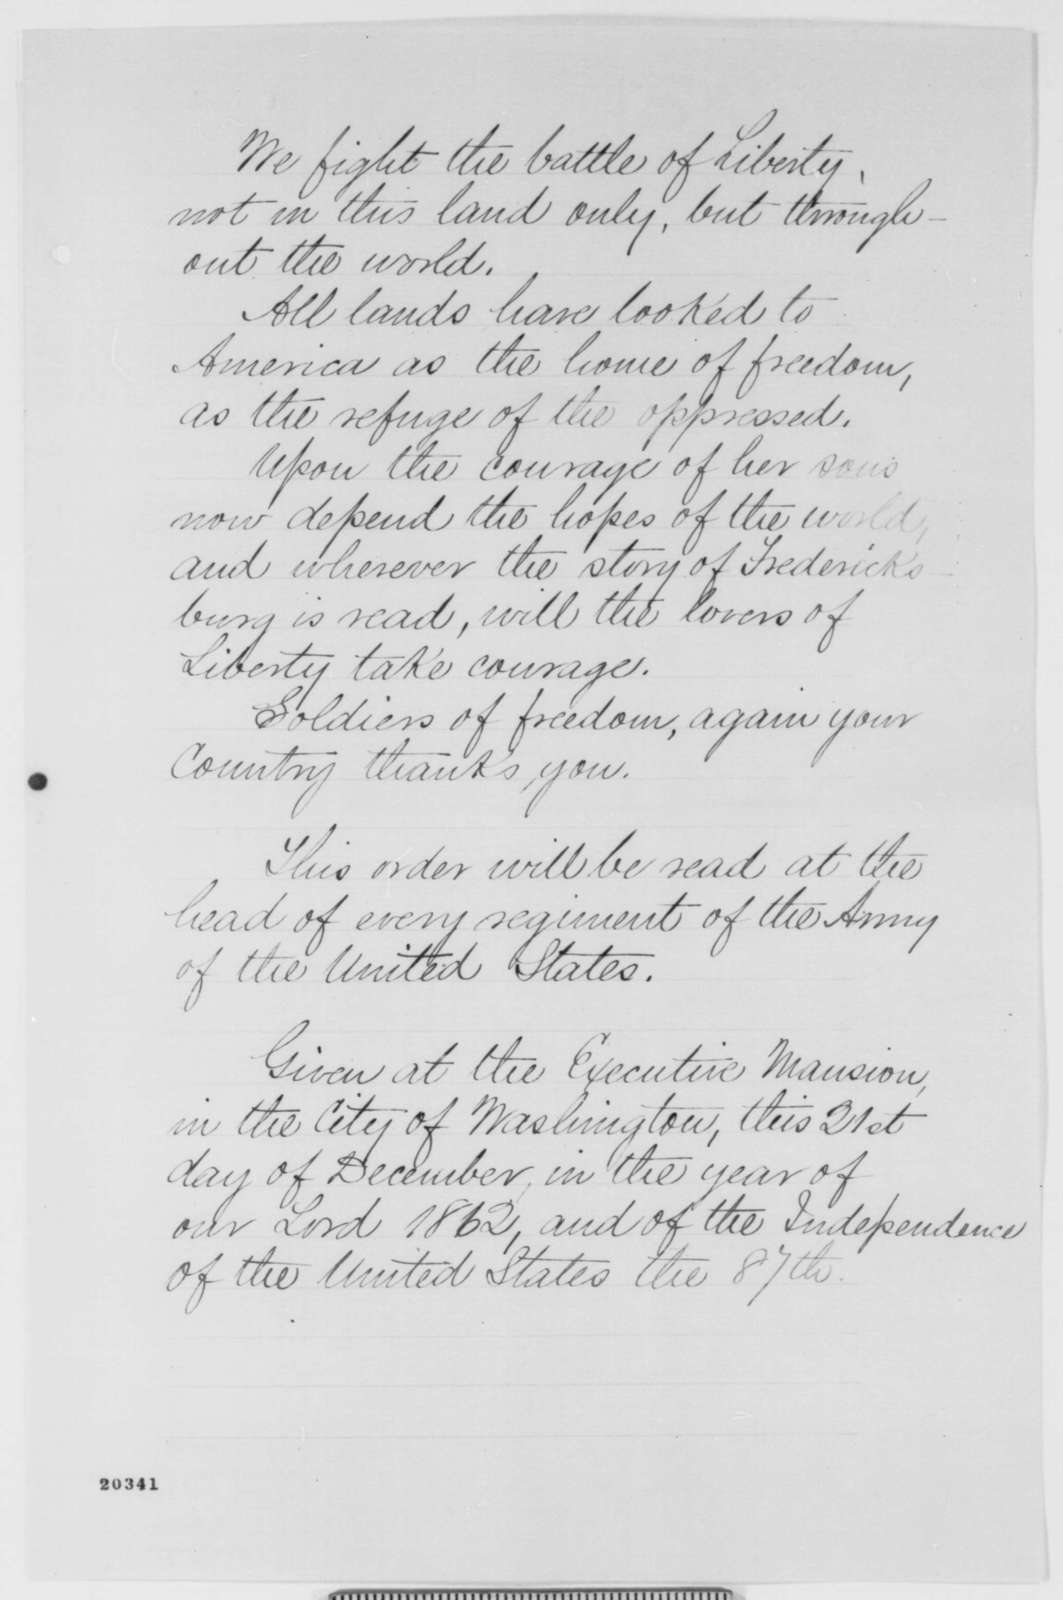 Unknown, Sunday, December 21, 1862  (Proposed Statement to Army of Potomac)